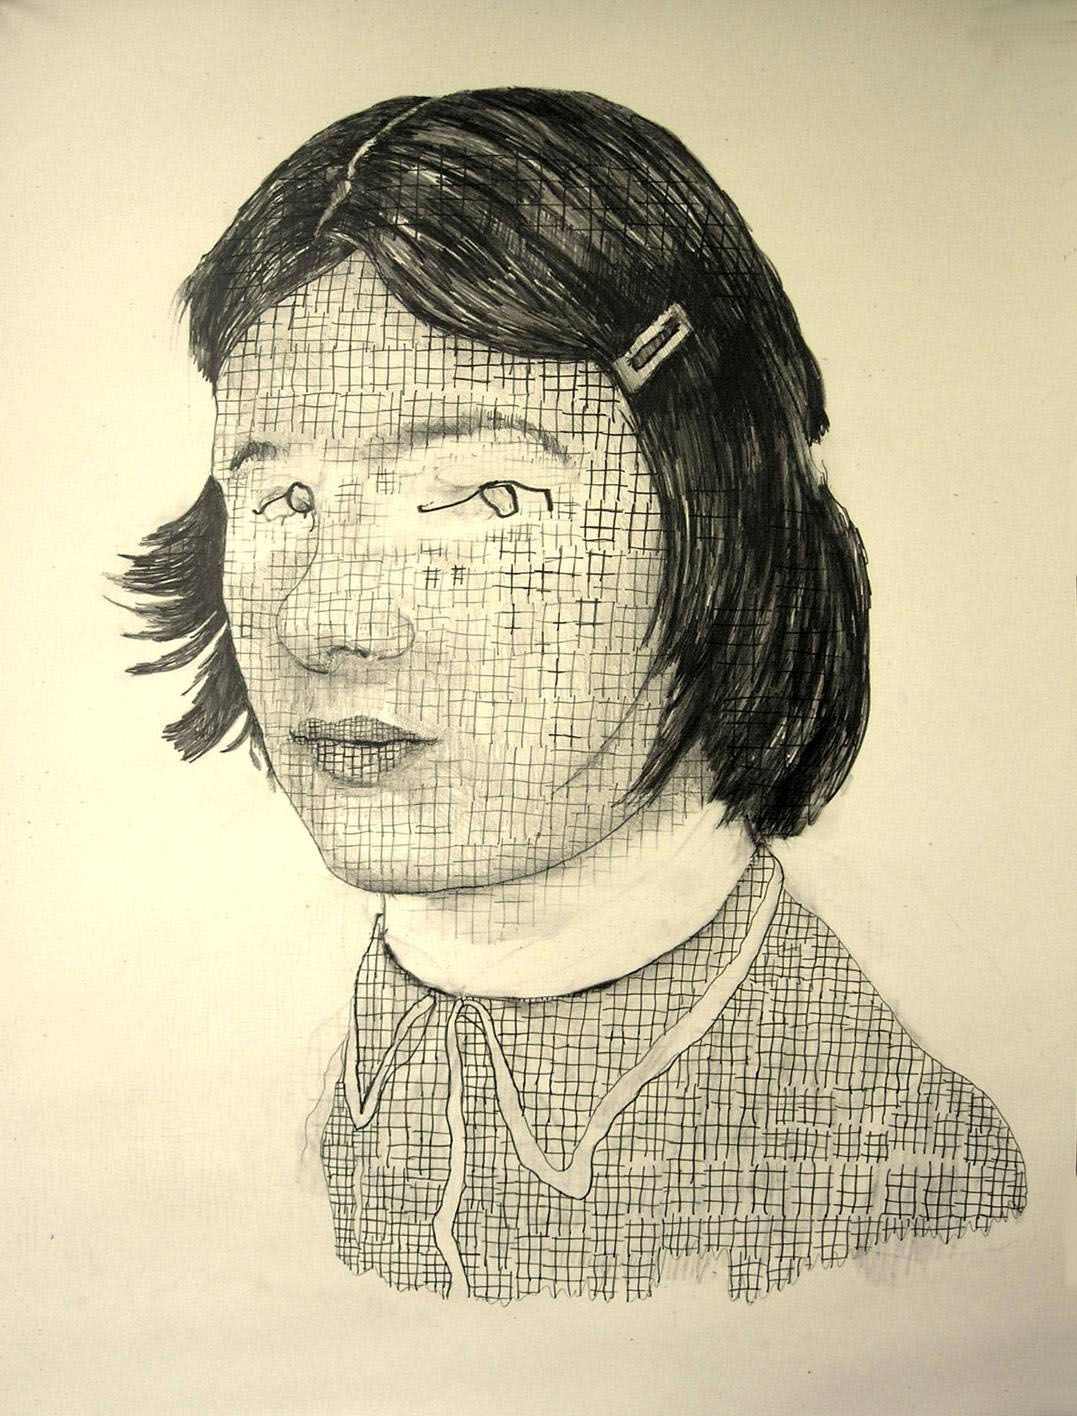 a drawing of a girl's face with a grid overlay by Dutch artist Hannah van Bart